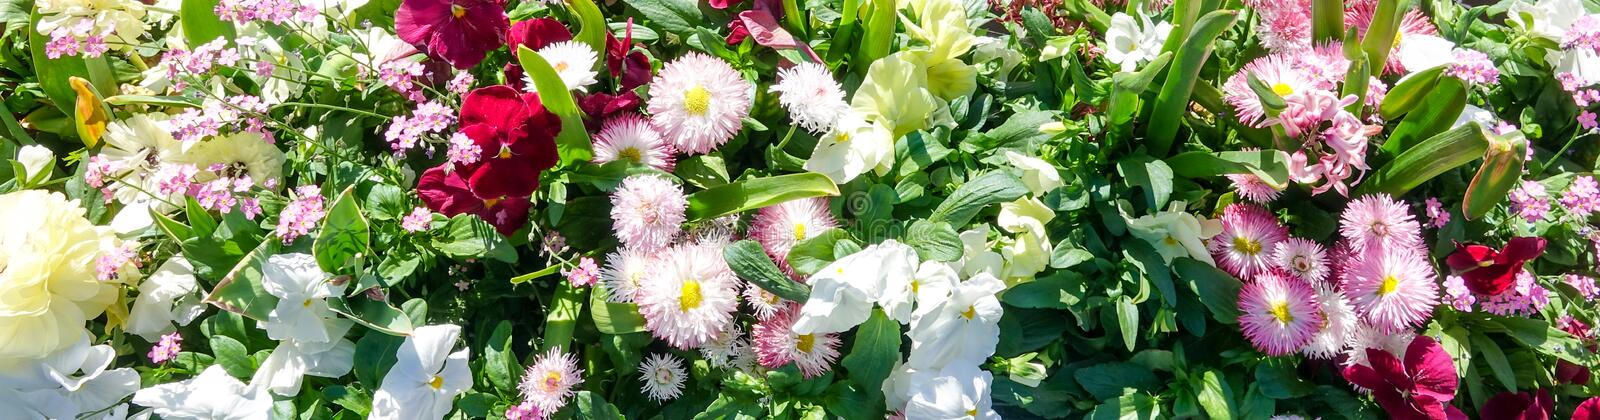 Colorful panorama with different kinds of flowers.  stock photography